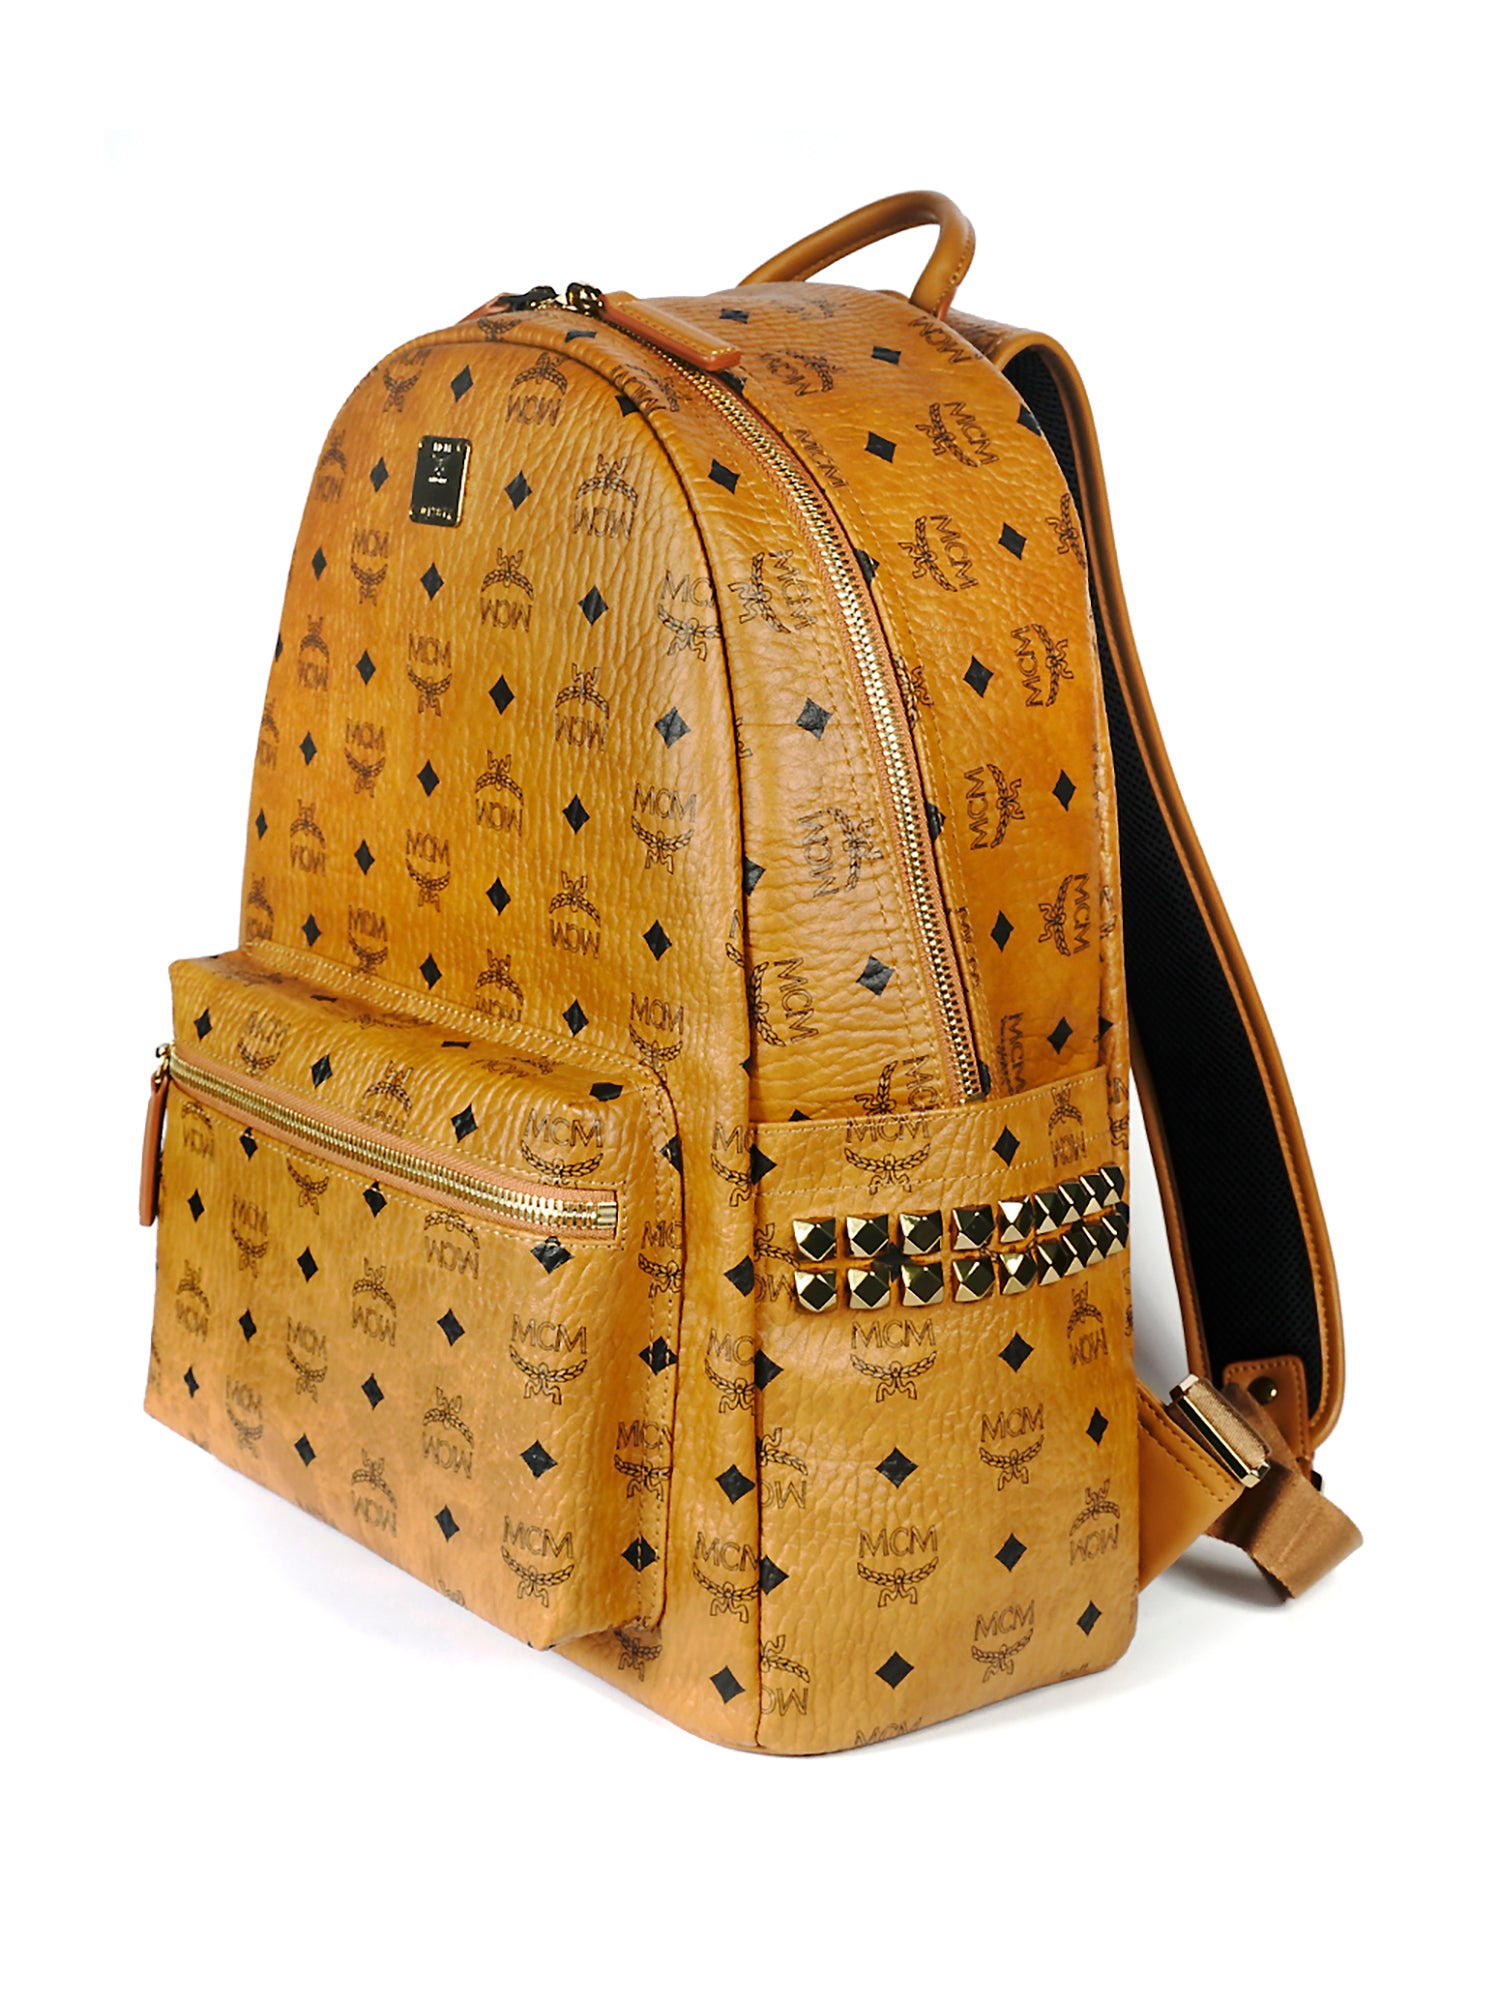 M_STARK BACKPACK MED CO, 001